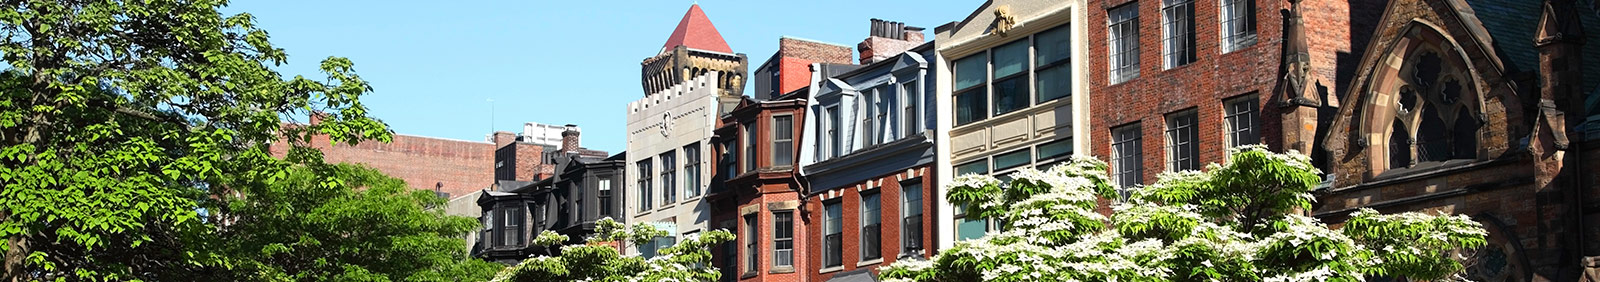 Keep up to date on real estate trends and markets in Boston with the City Realty Blog!